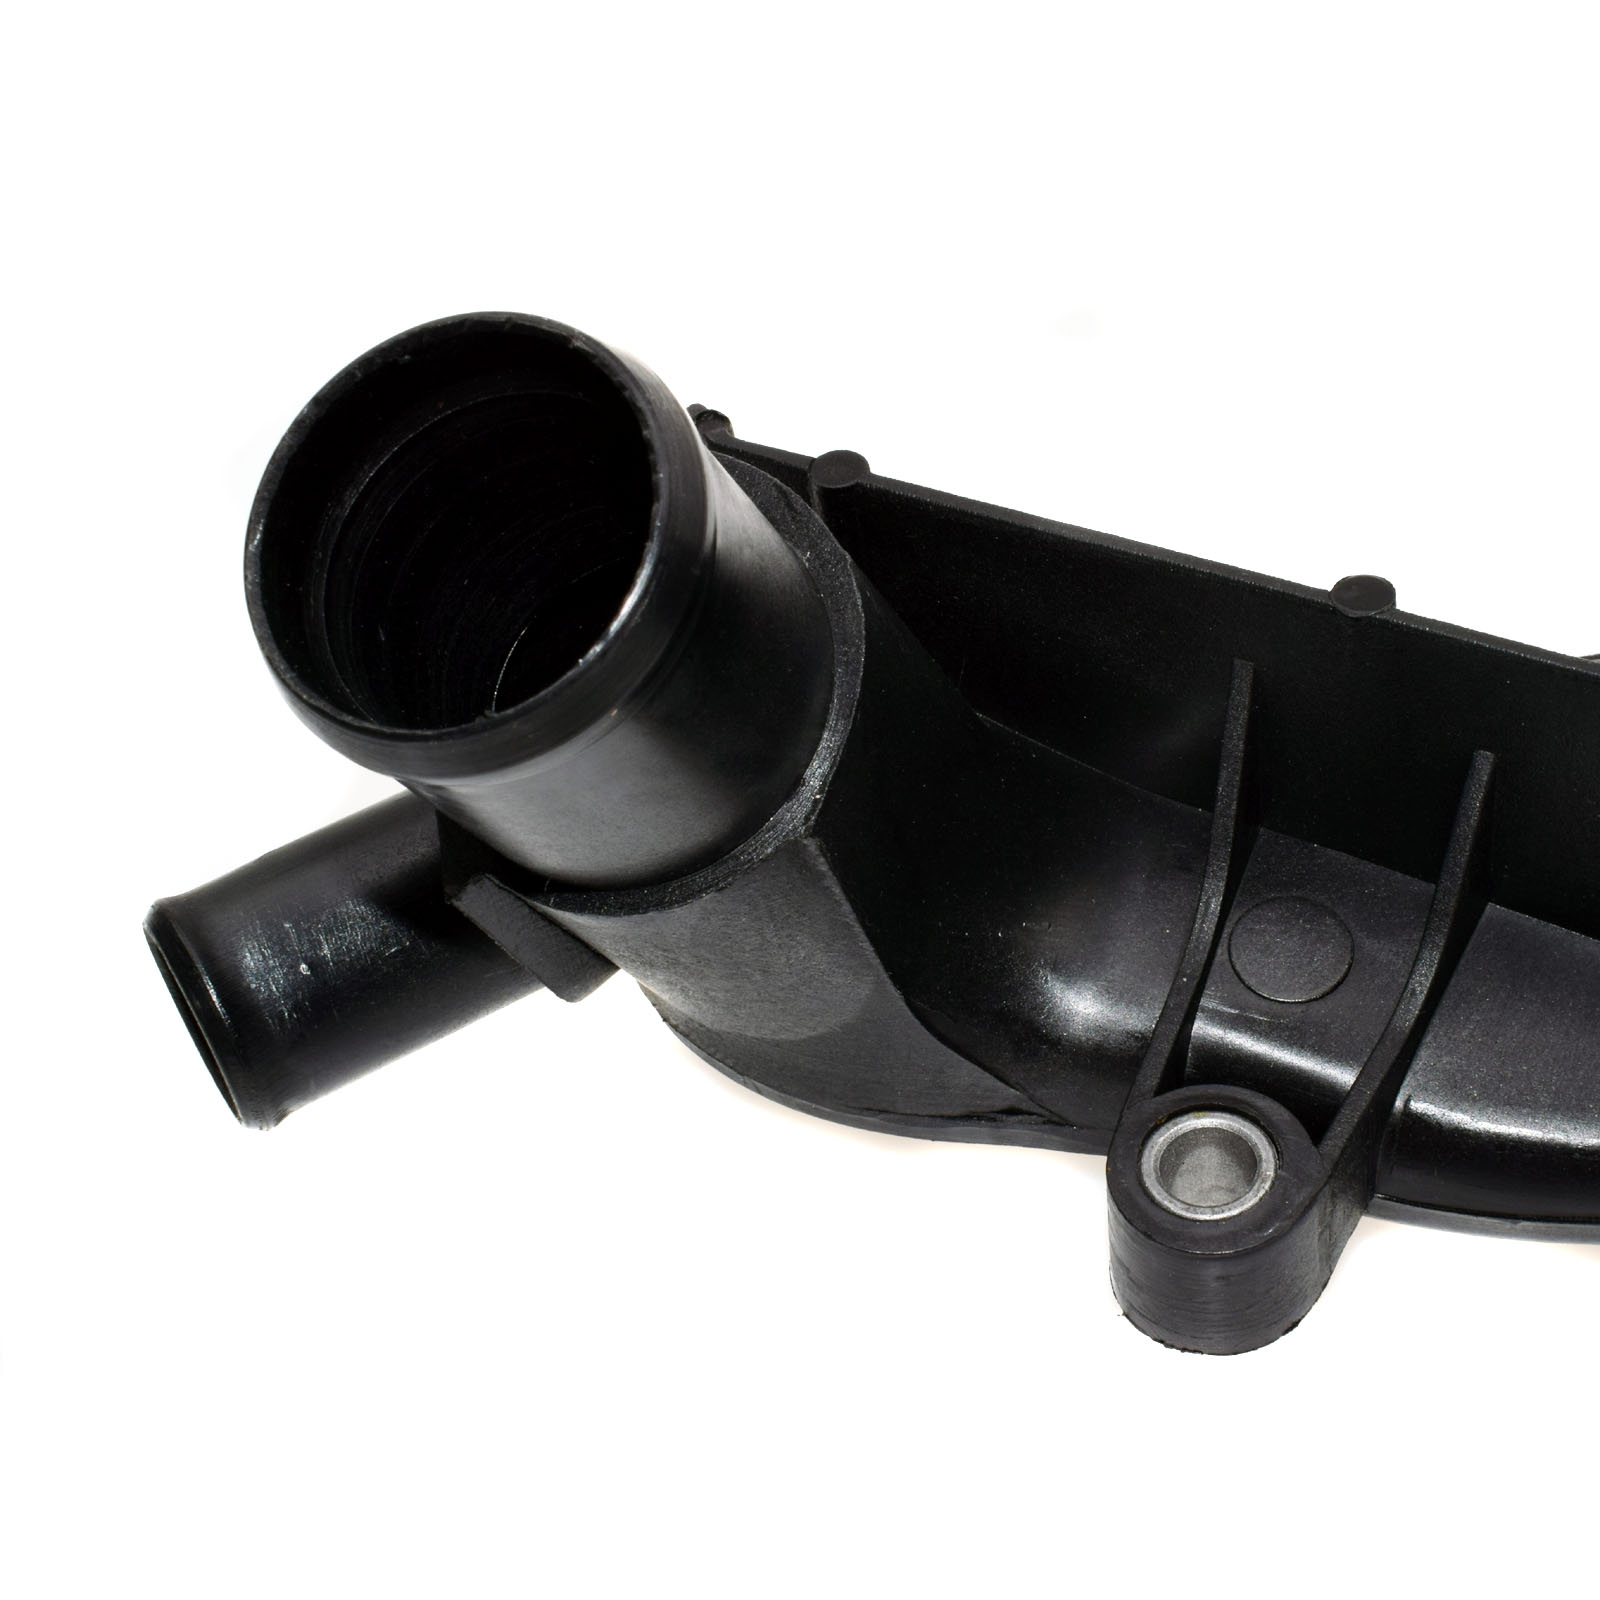 medium resolution of wolfigo thermostat housing for audi a6 allroad quattro v6 vw passat 078121121k 078 121 121 k in thermostats parts from automobiles motorcycles on